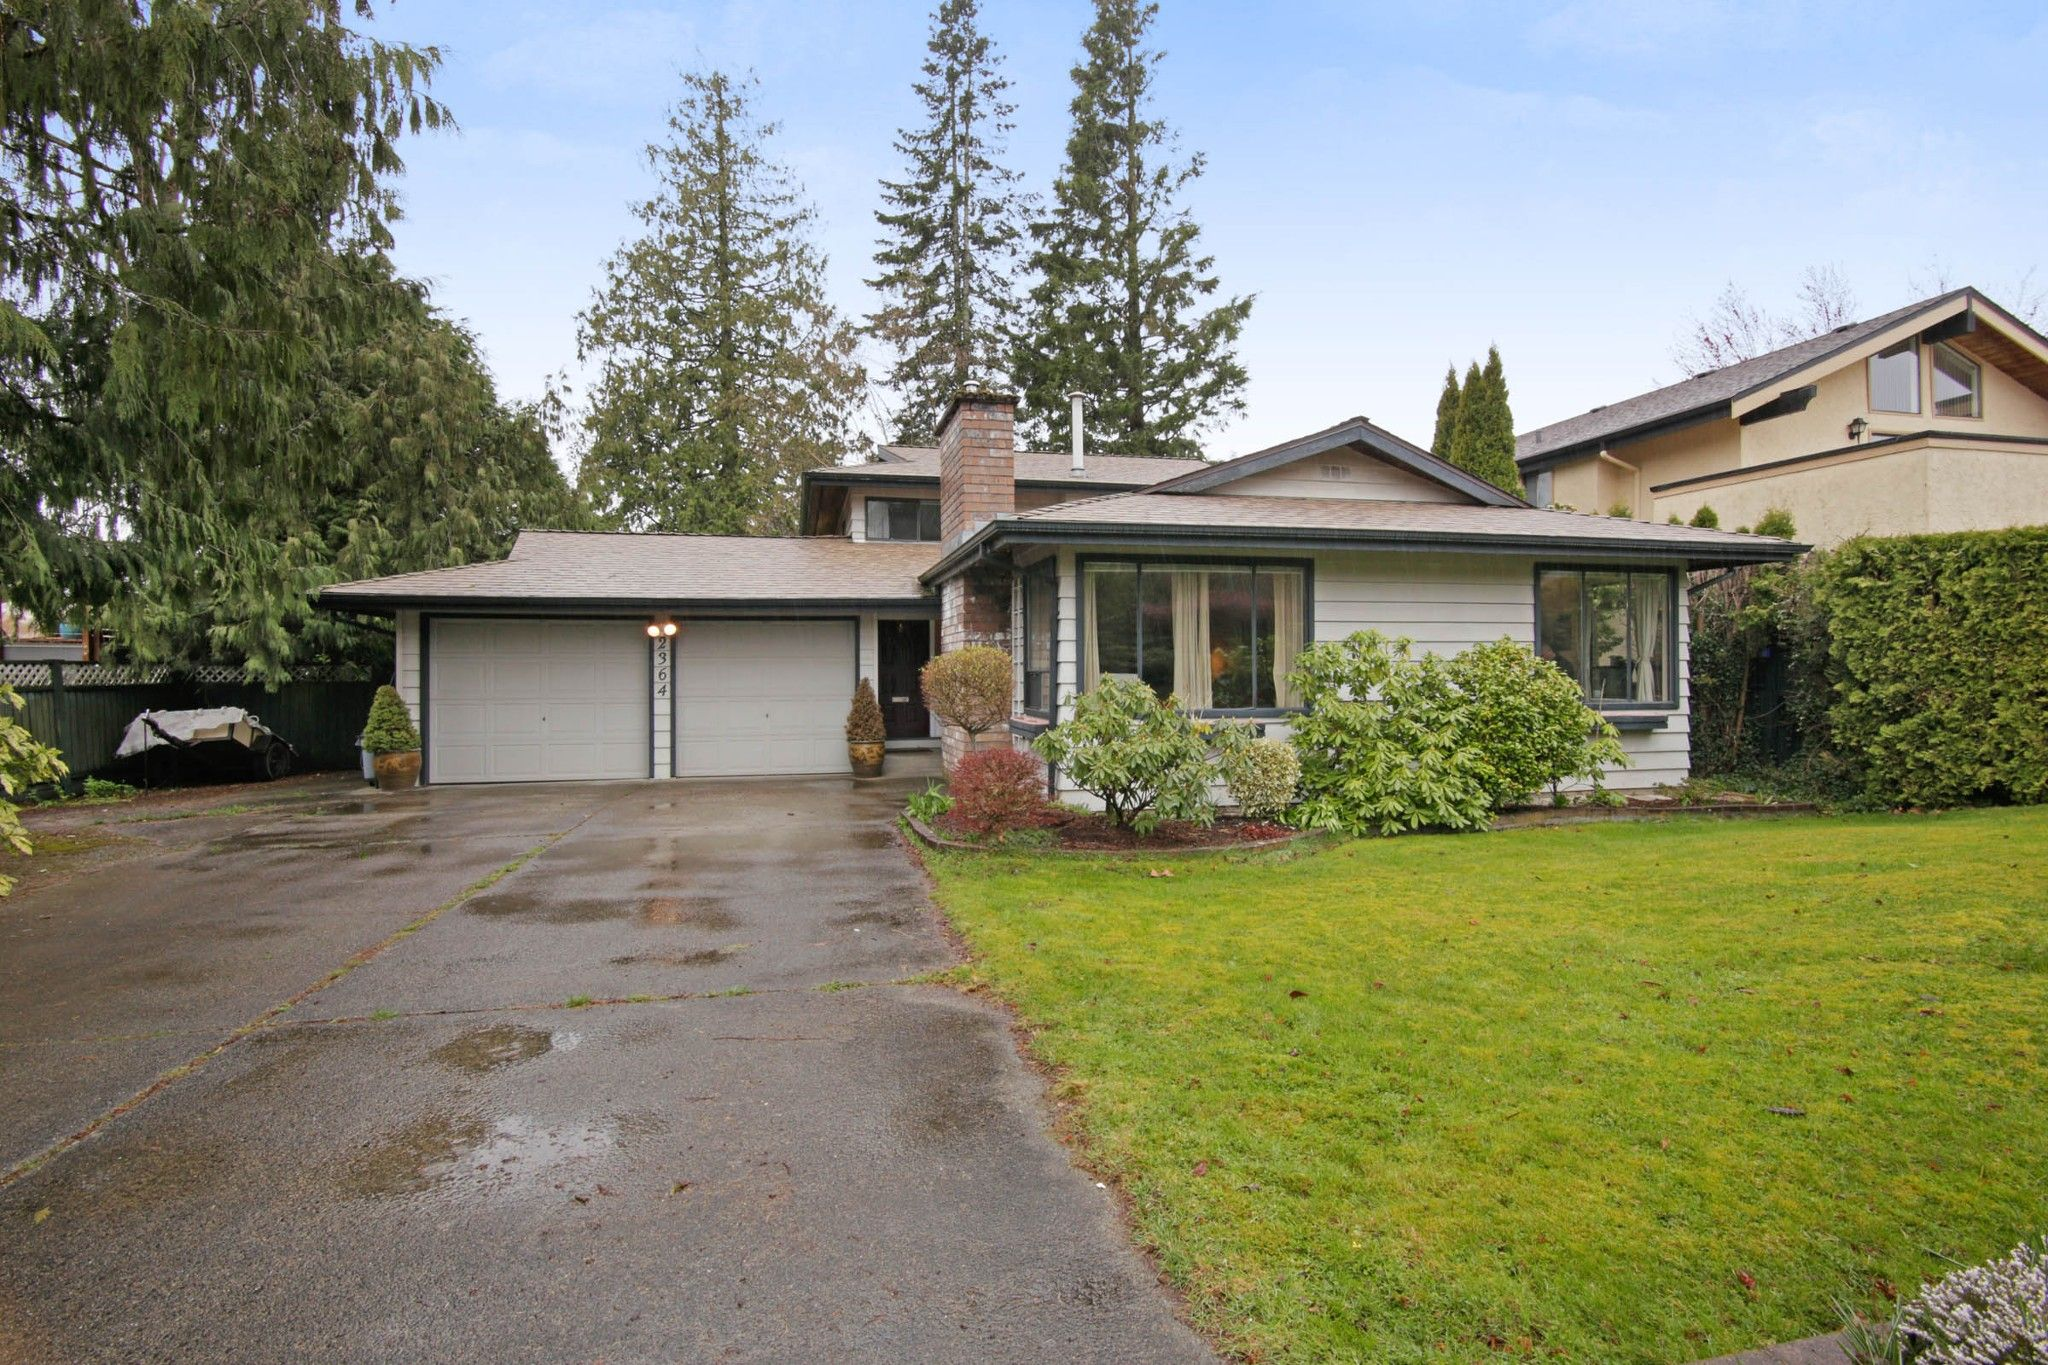 Main Photo: 2364 ANORA Drive in Abbotsford: Abbotsford East House for sale : MLS®# R2251133